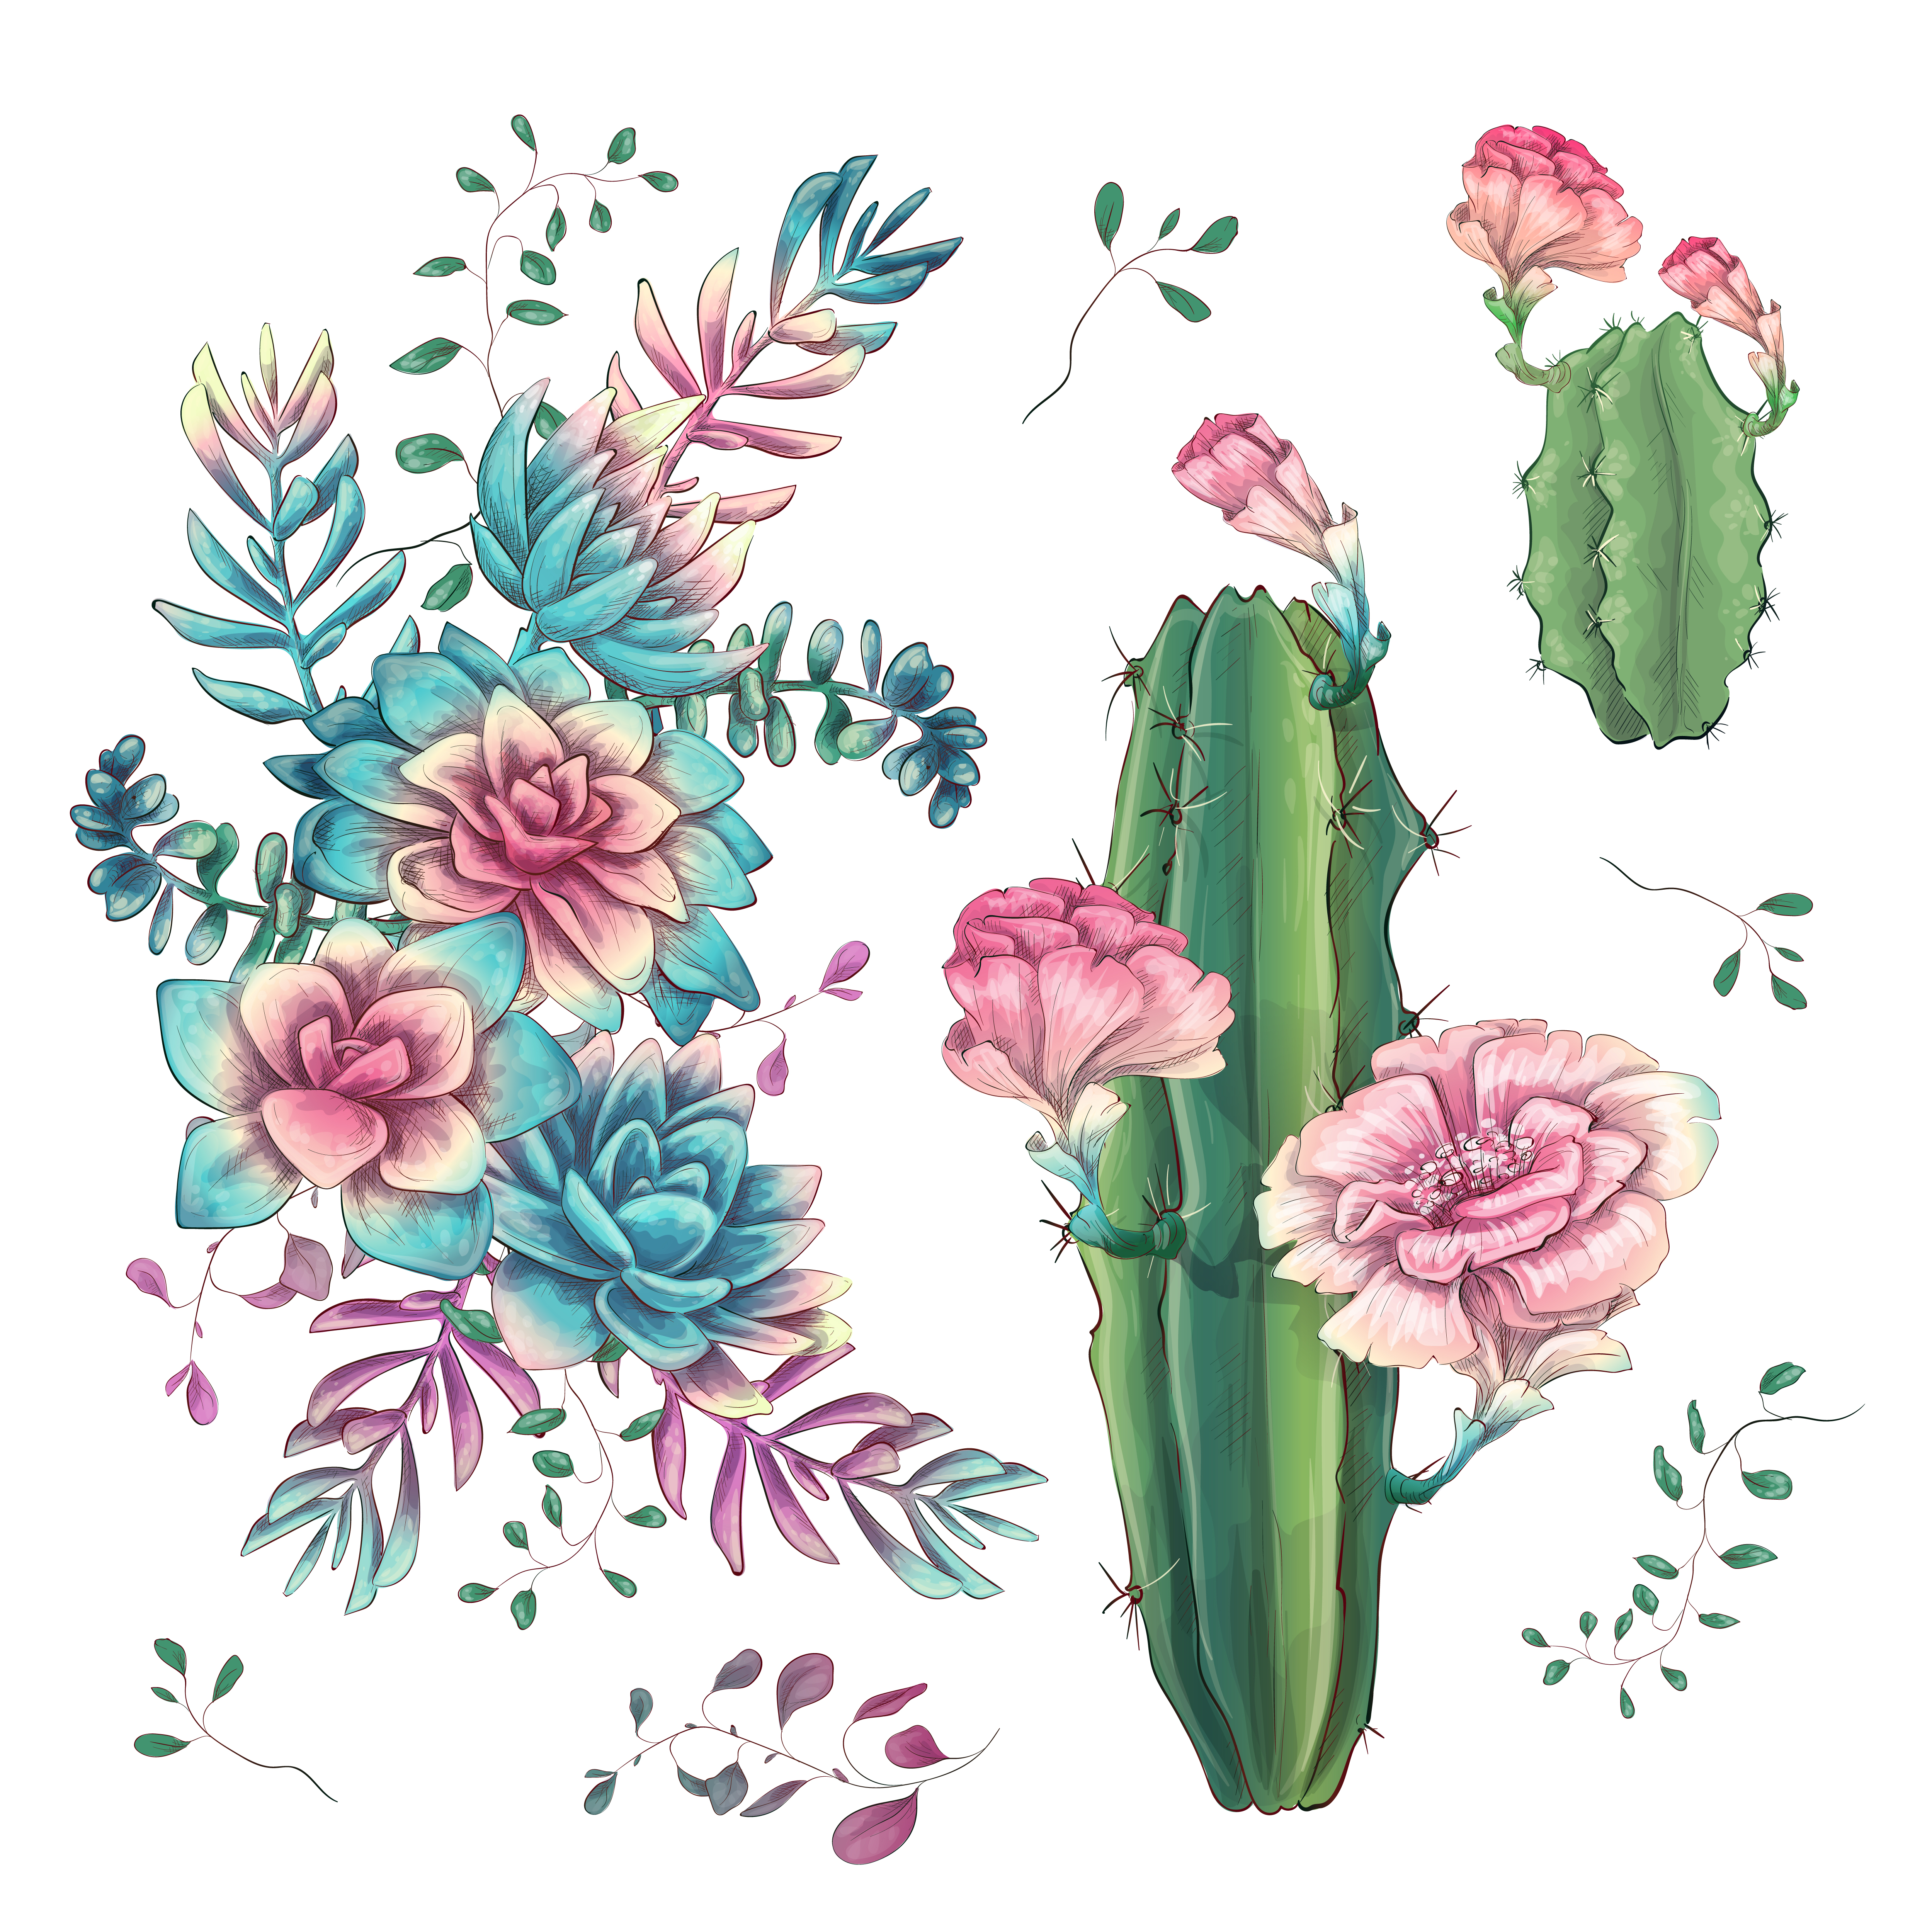 Floral And Botanical Logos Collection: Succulents. Cacti Hand Drawn On A White Background